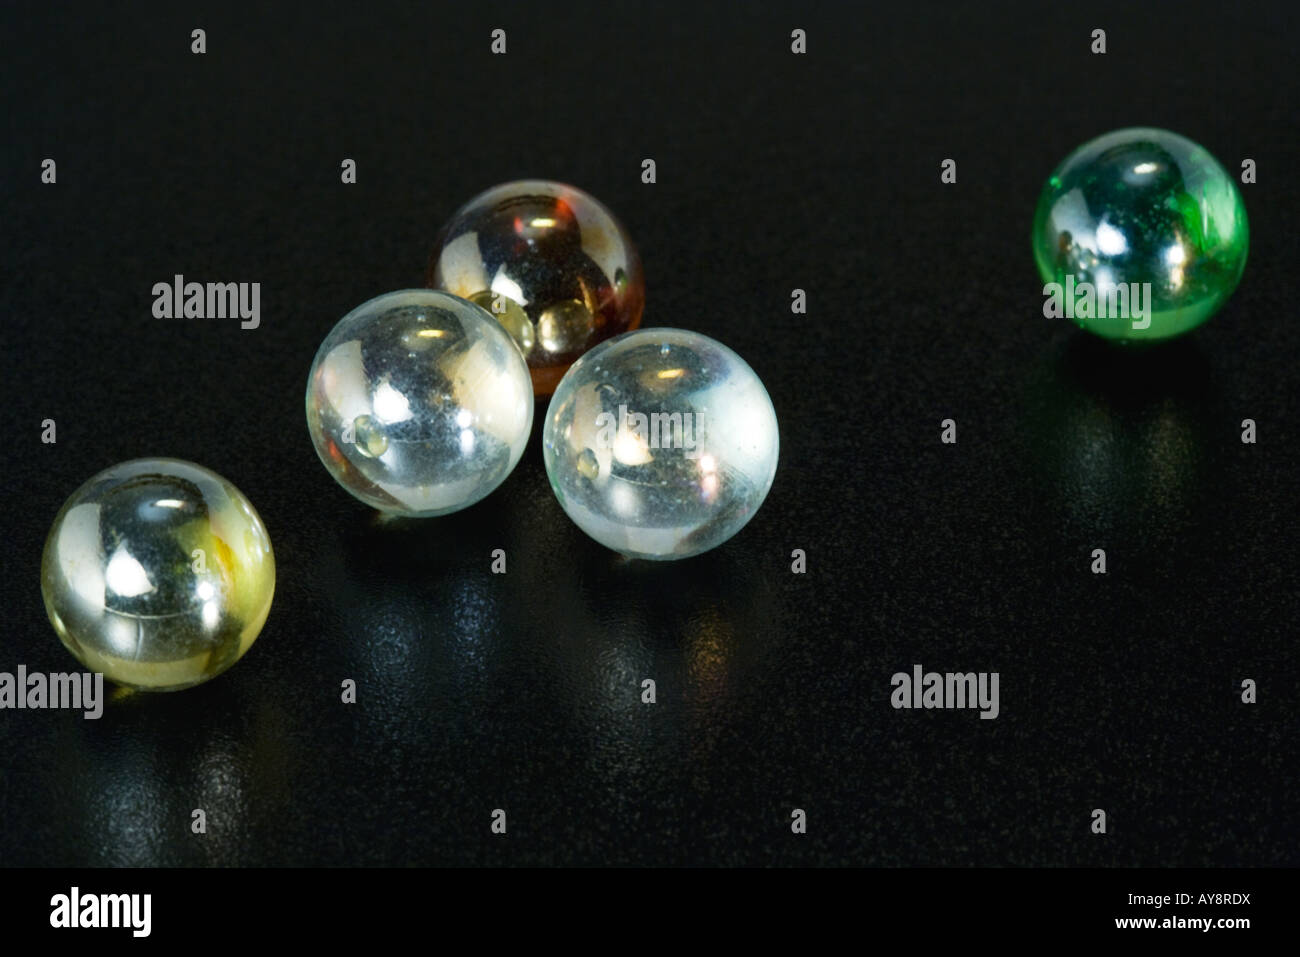 Glass marbles, close-up - Stock Image